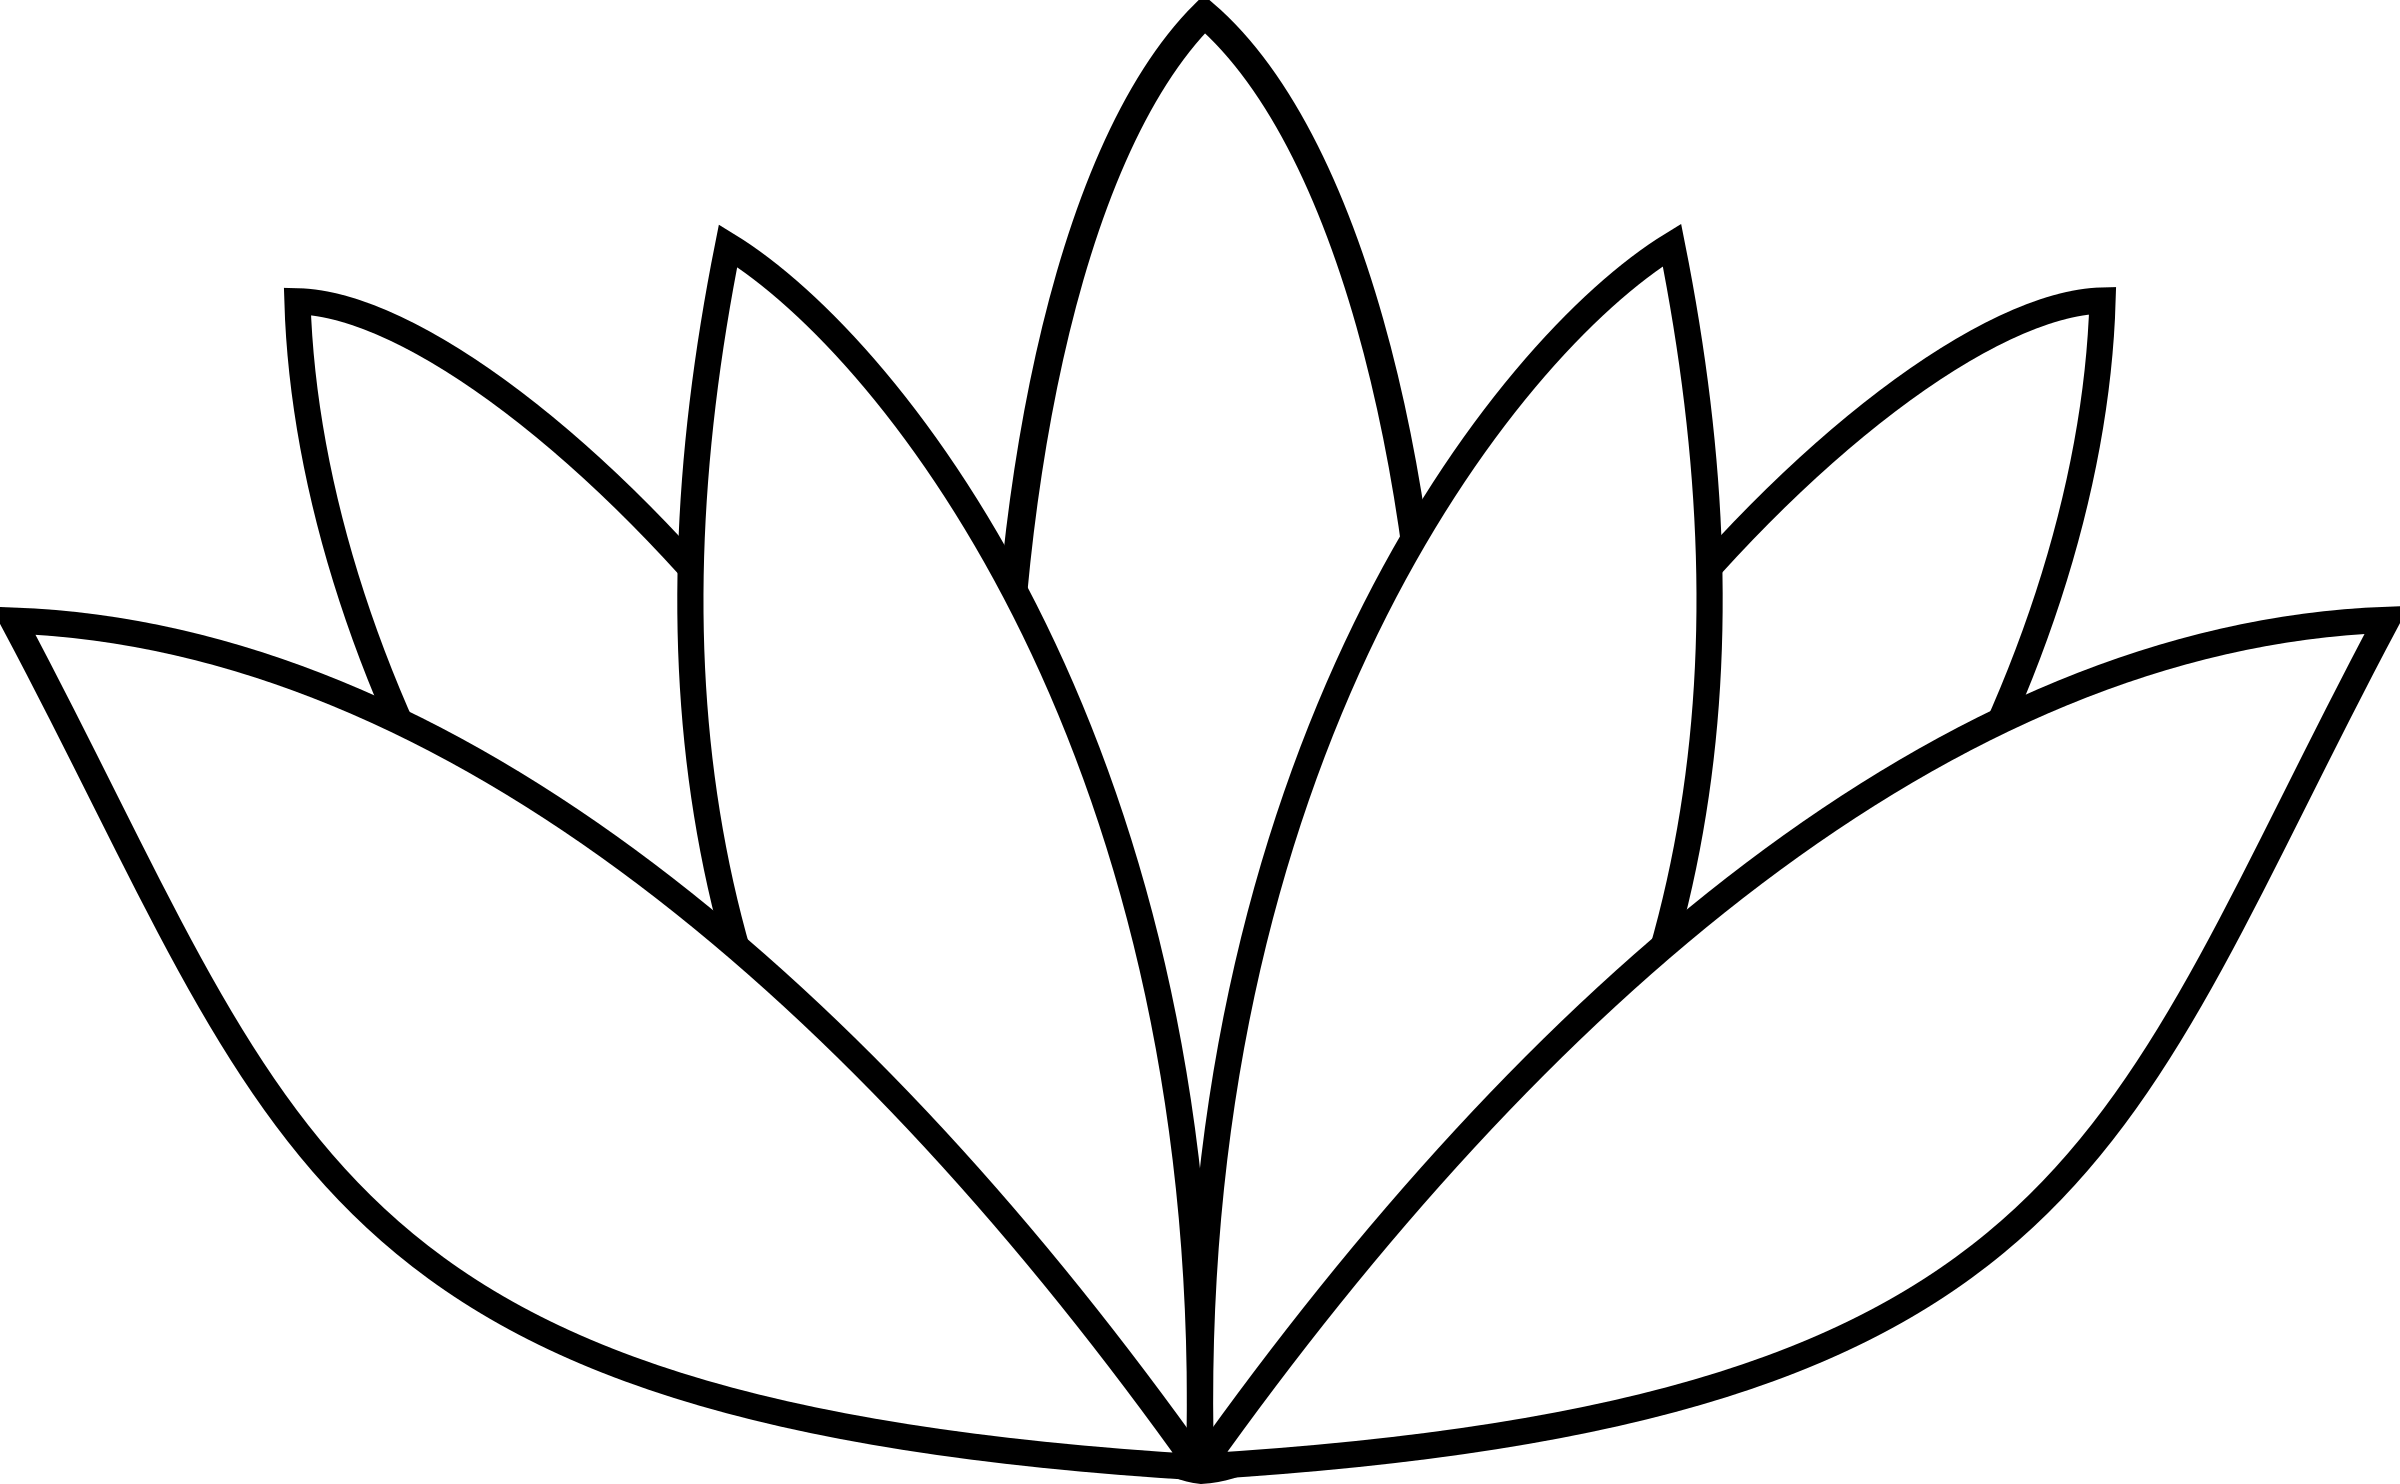 BIG IMAGE (PNG) - Lotus Flower Black And White PNG